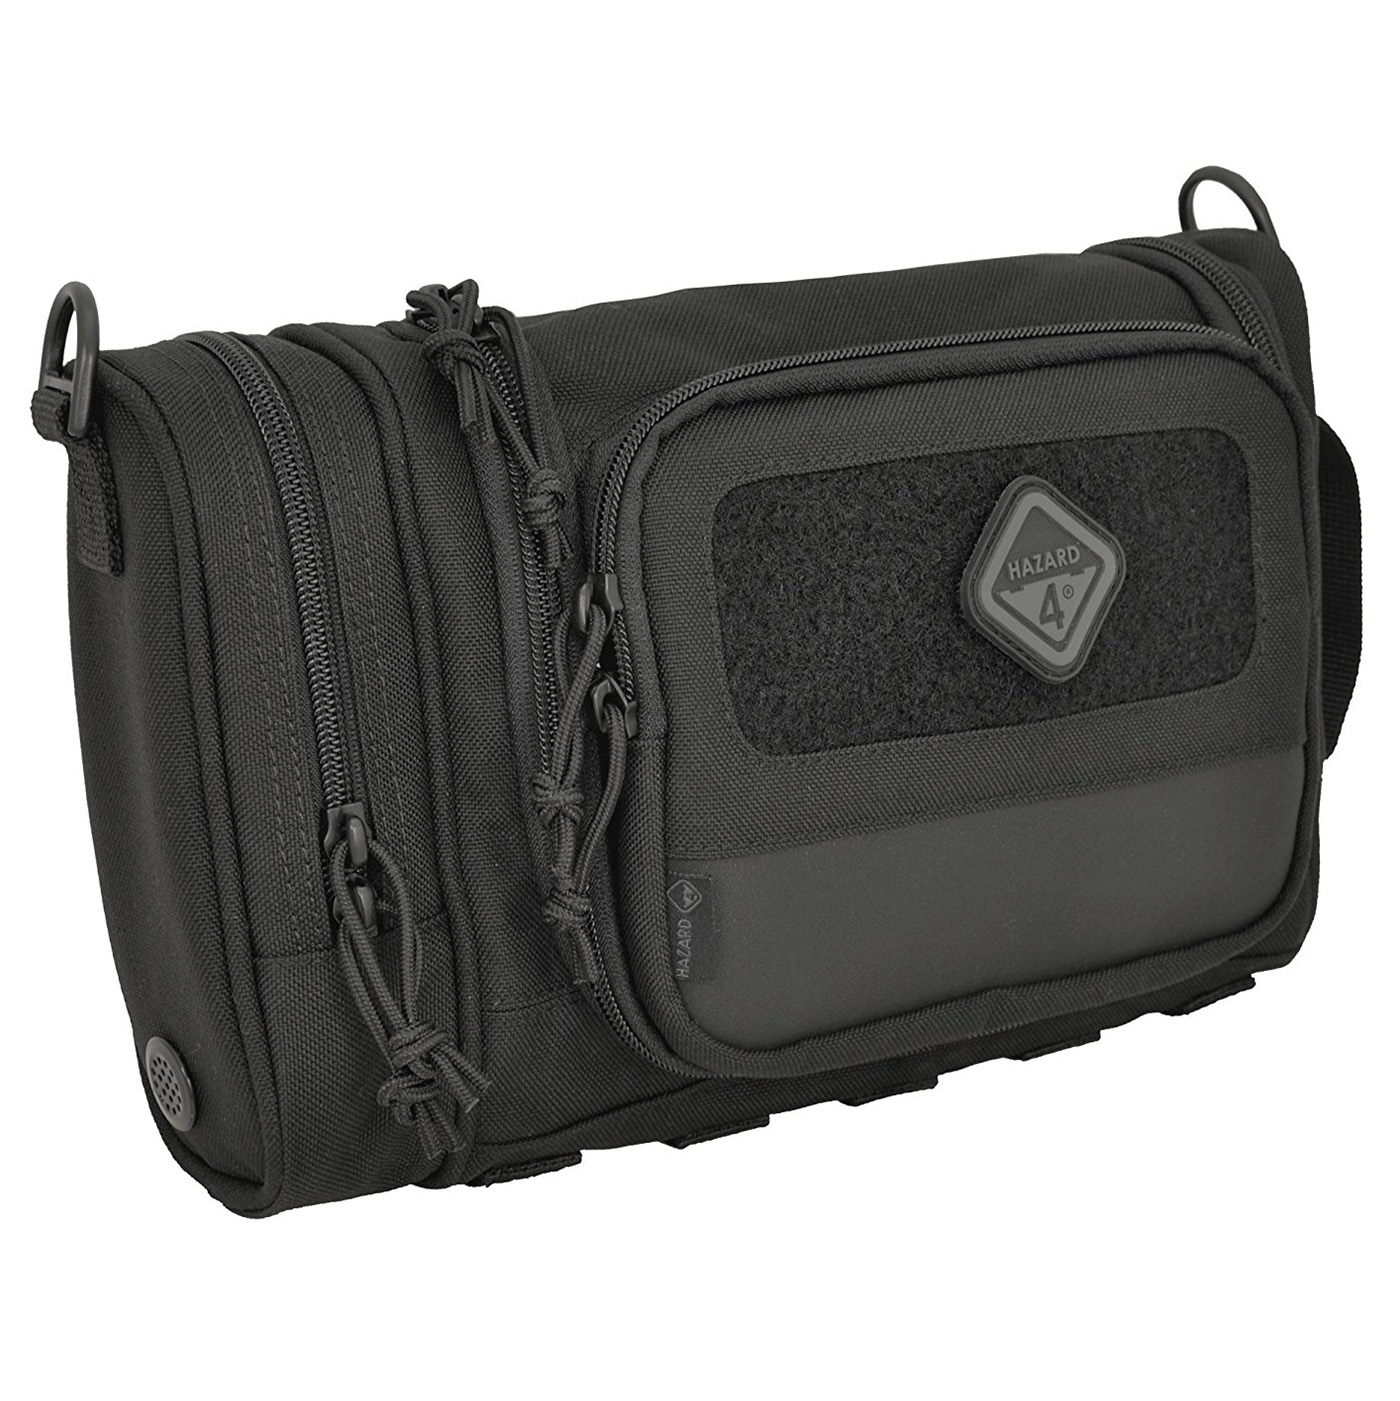 Hazard 4 RVL-CRD-BLK Reville Heavy Duty Grooming Camping Toiletry Kit, Black